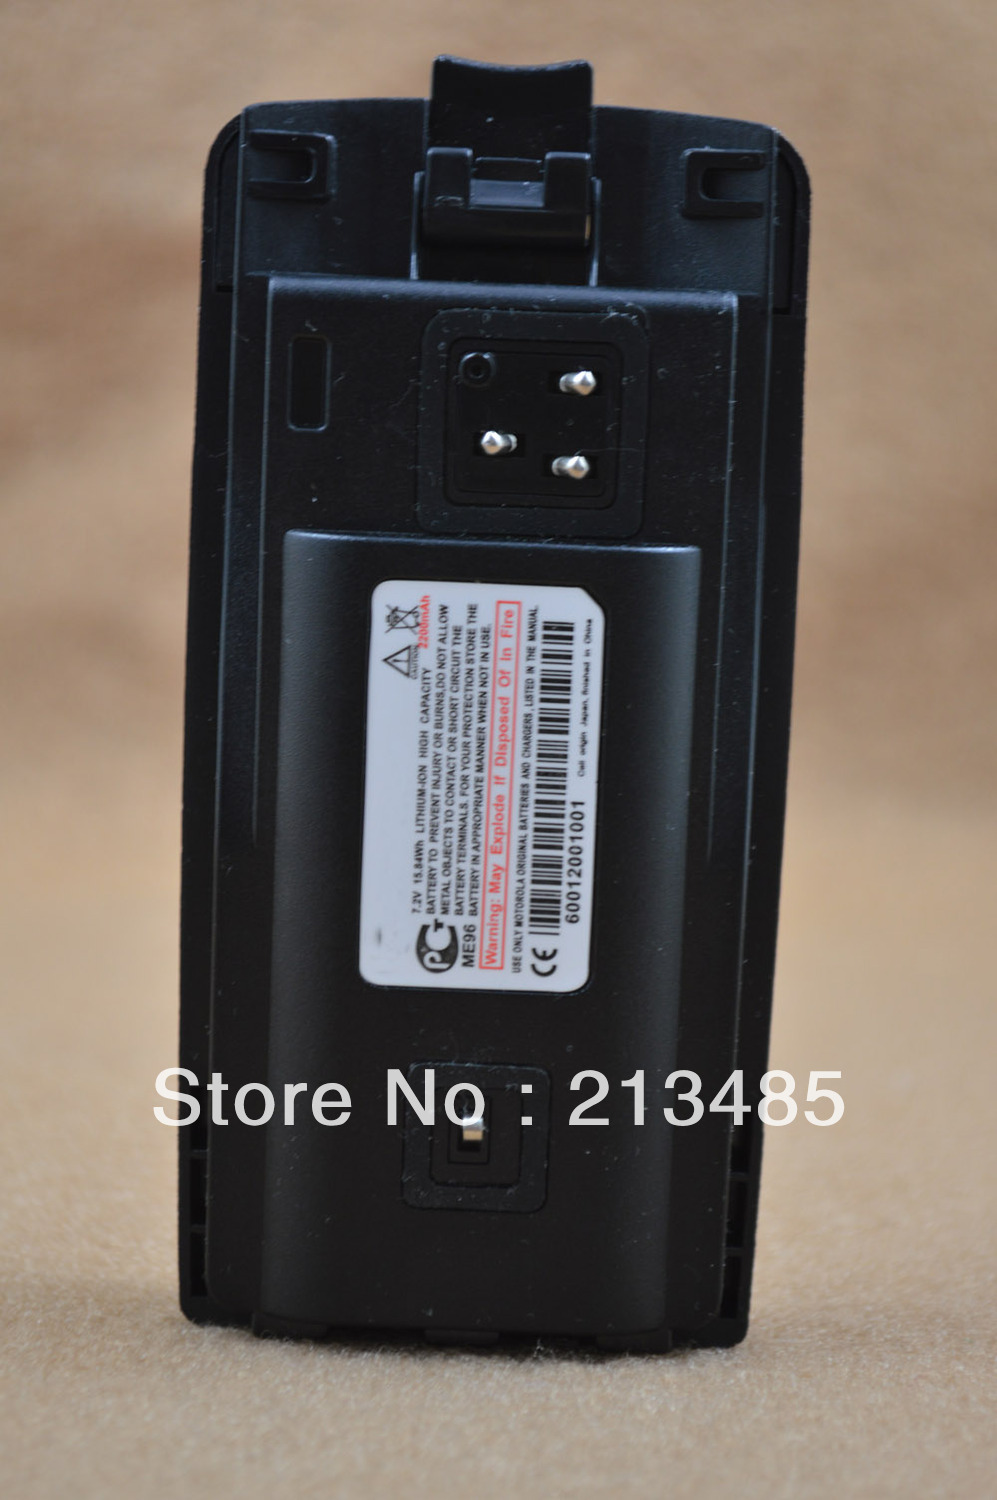 RLN6305 DC7.2V 2200mAh LITHIUM-ION Battery For Motorola XTNi XTNi XTNiD,Mag One A10,Mag One A12, CP110,CP1800,CP1100